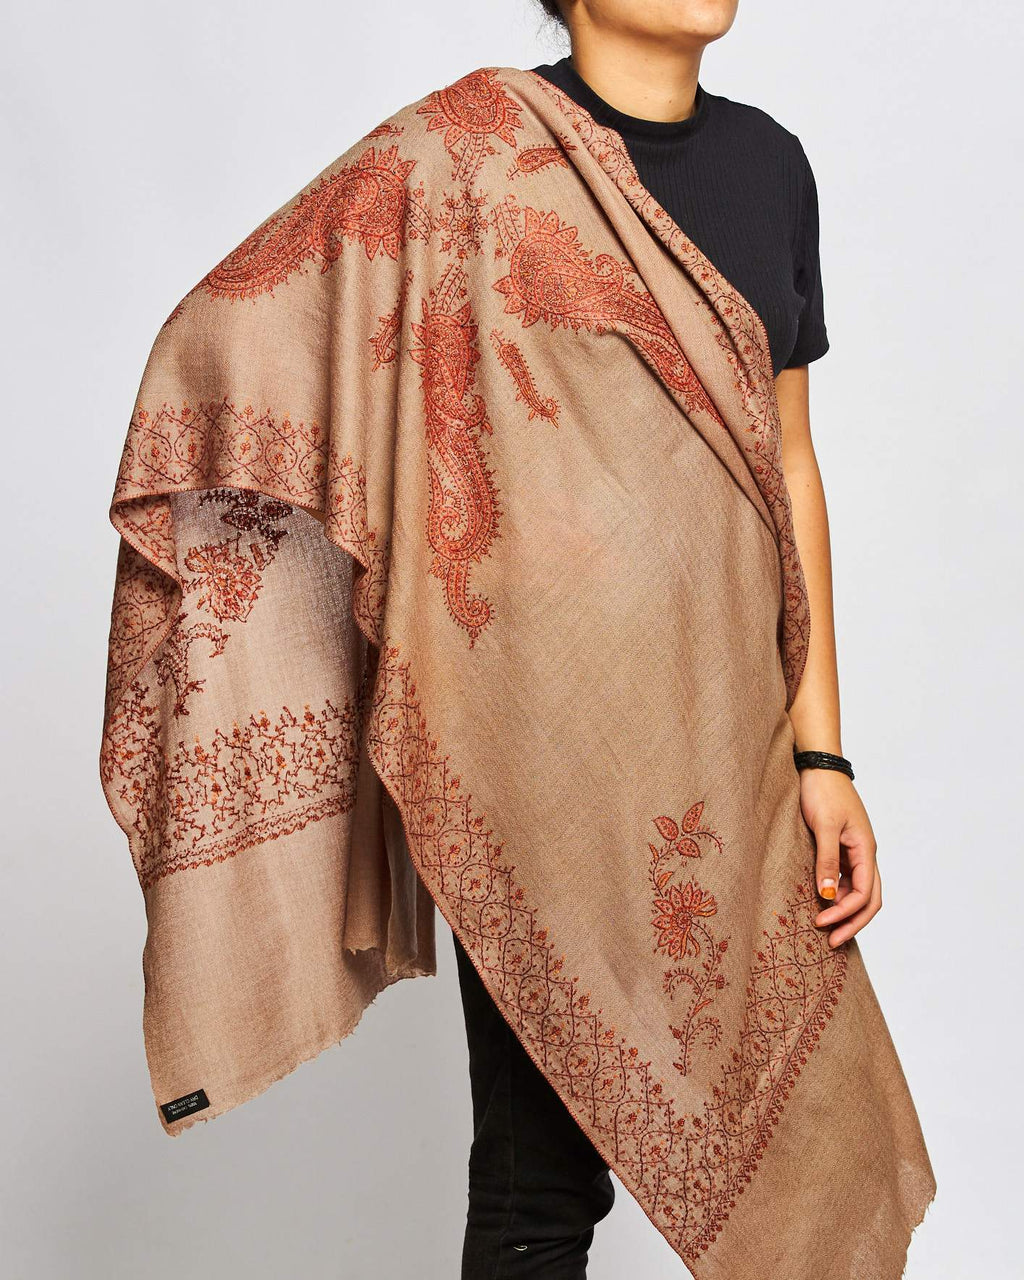 Cashmere Hand Embroidered Scarf - Brown/Orange